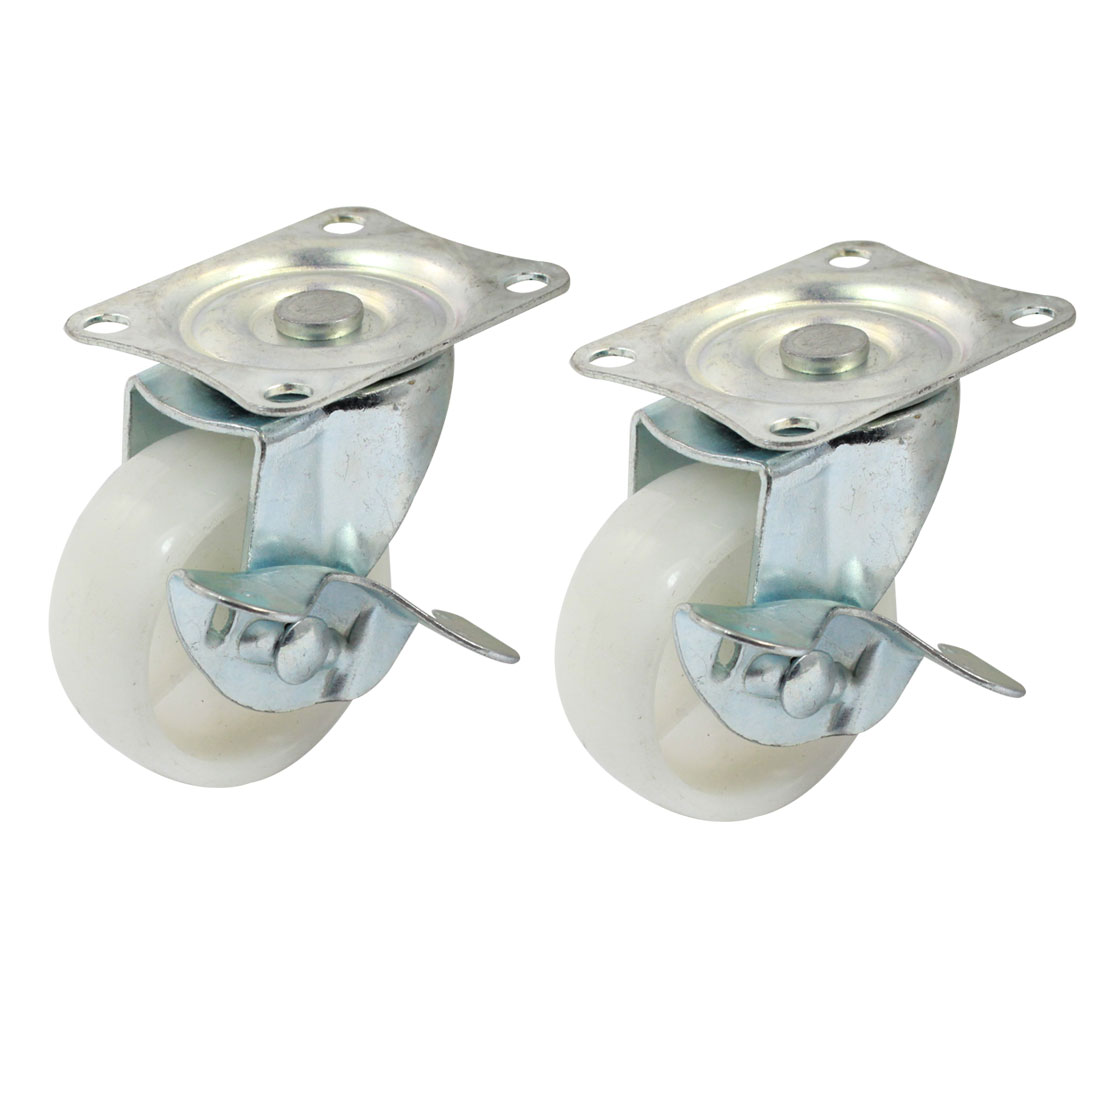 "Laundry Trolley 2"" Round Ball Bearing Rectangle Top Plate 360 Degree Rotary Swivel Brake Caster 2pcs"